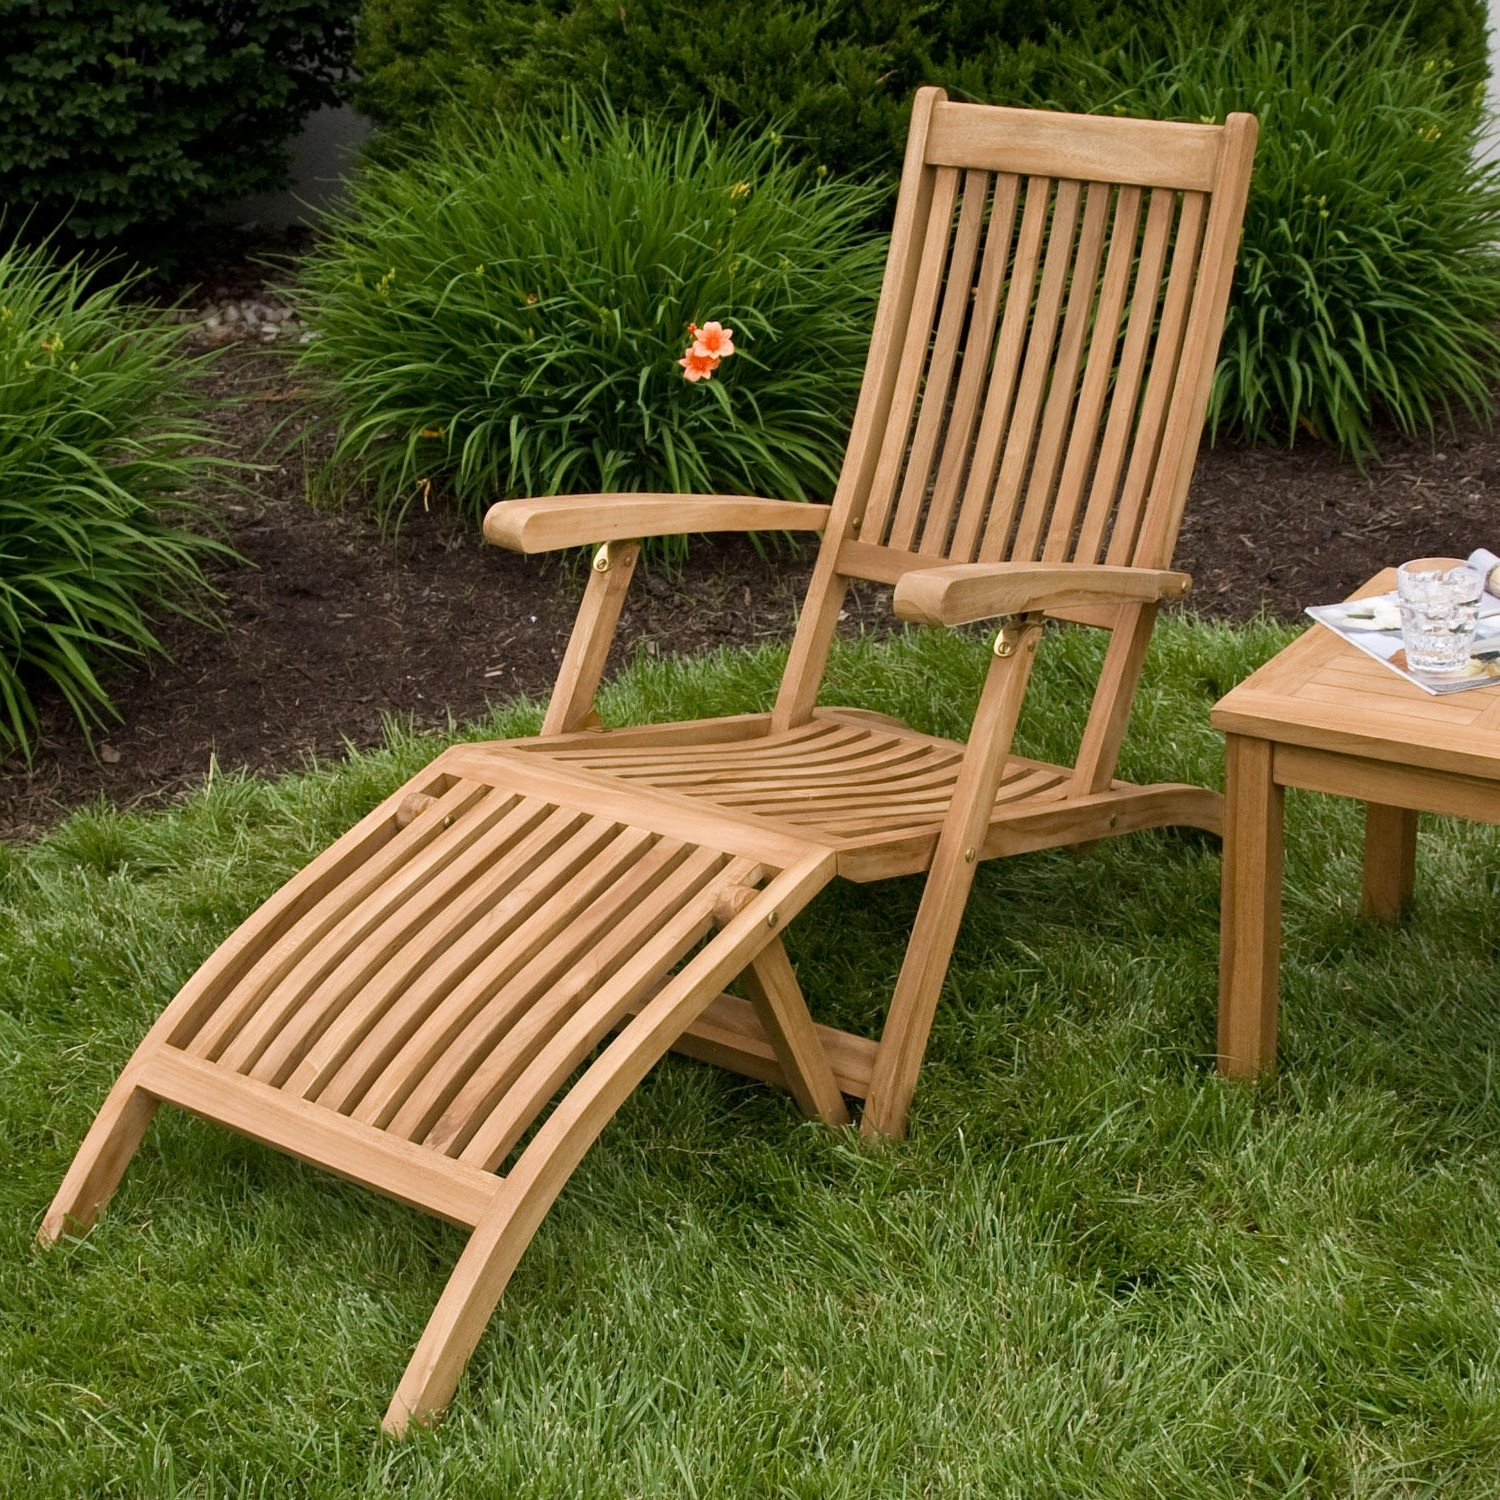 Signature Hardware Within Foldable Chaise Lounge Outdoor Chairs (View 10 of 15)